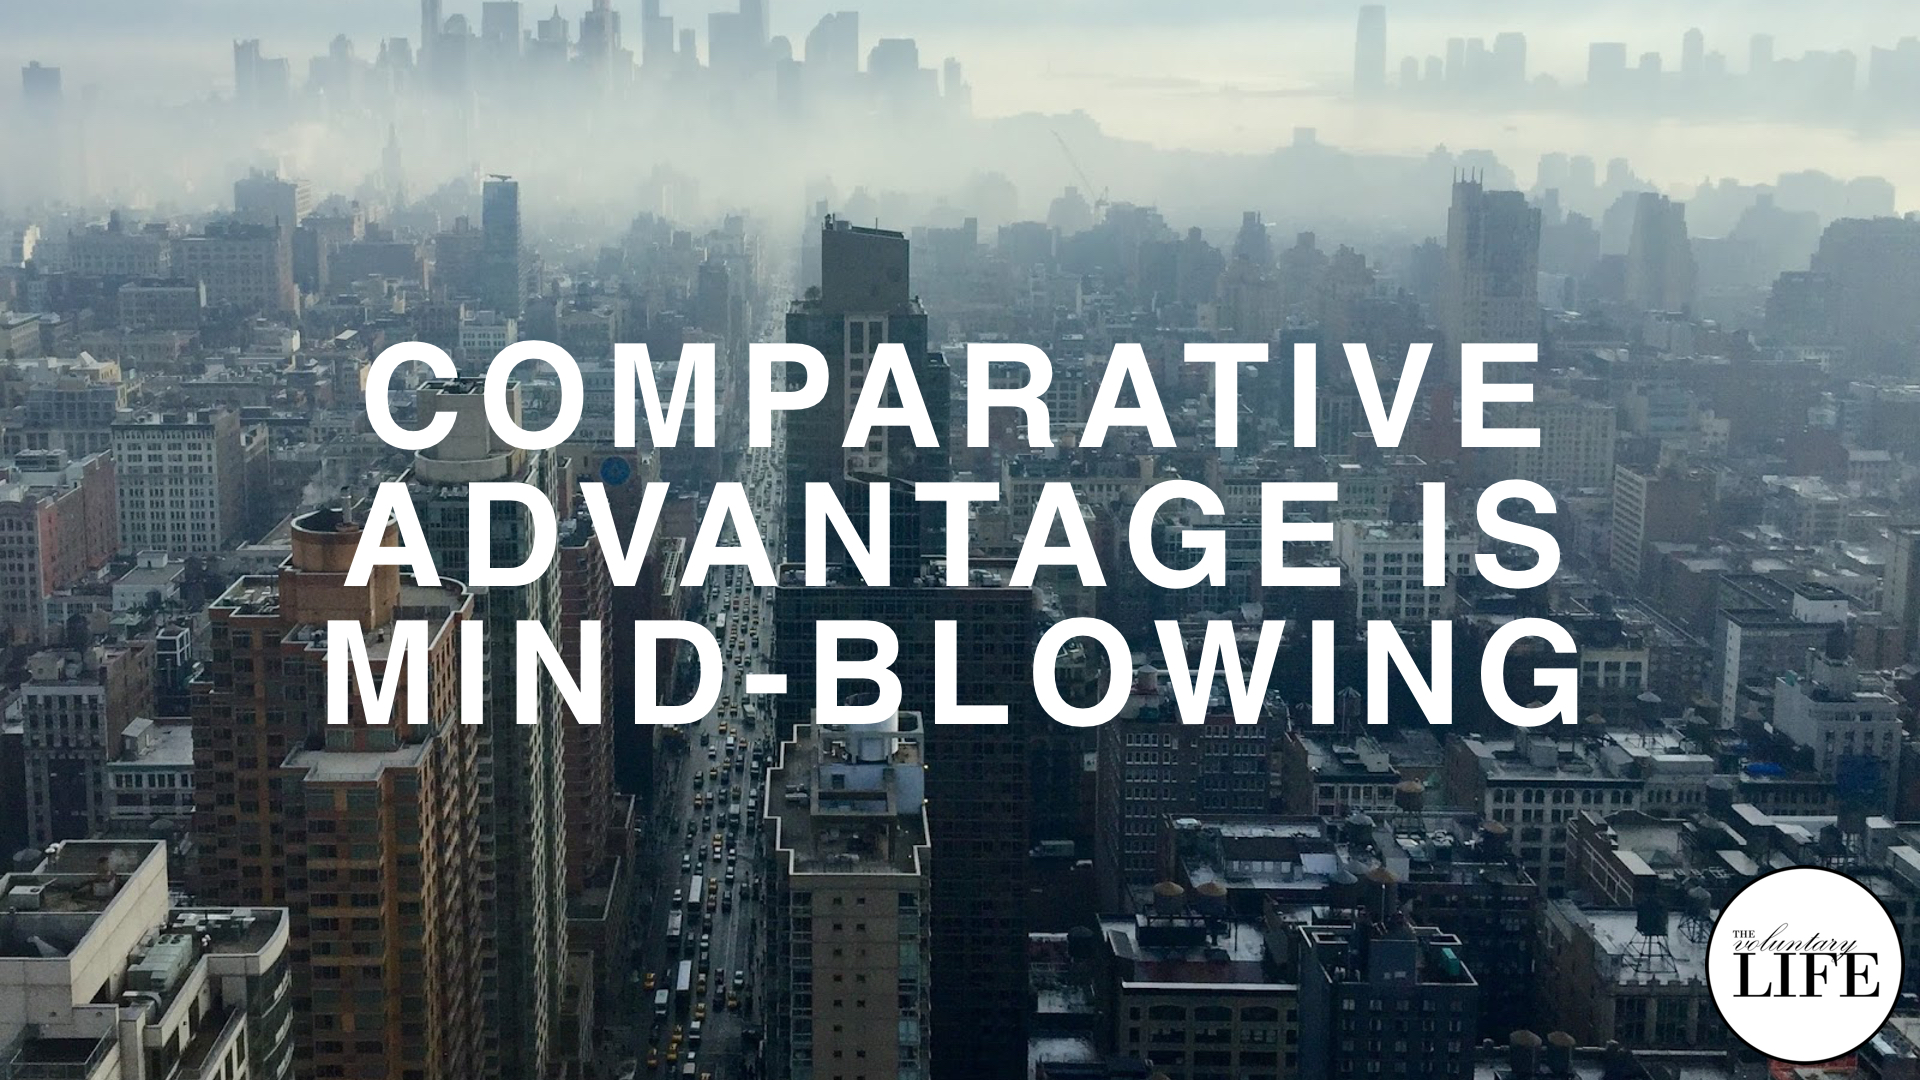 225 Comparative Advantage Is Mind-blowing